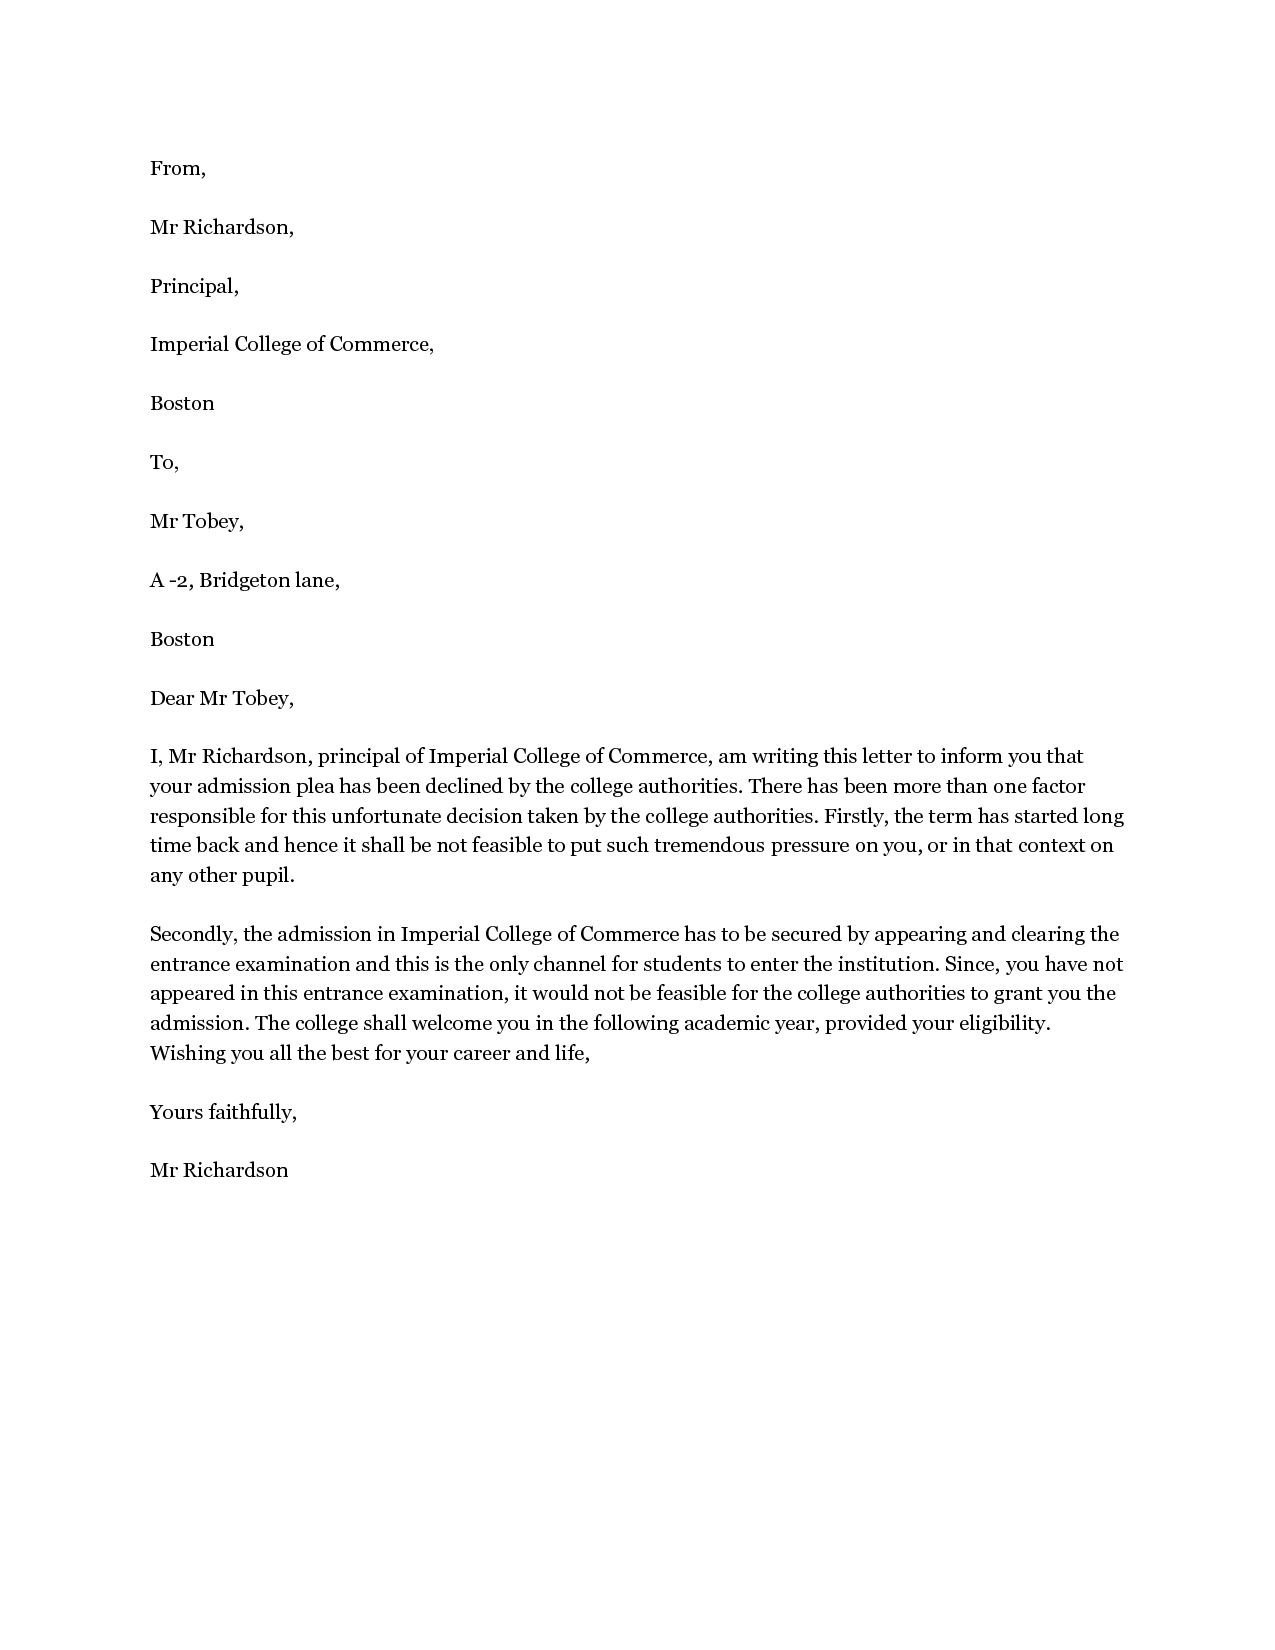 Elegant Decline Admission Letter   The Letter Should Be Brief, Positive, And To The  Point. Here Is A Sample Letter For Declining College Admission.